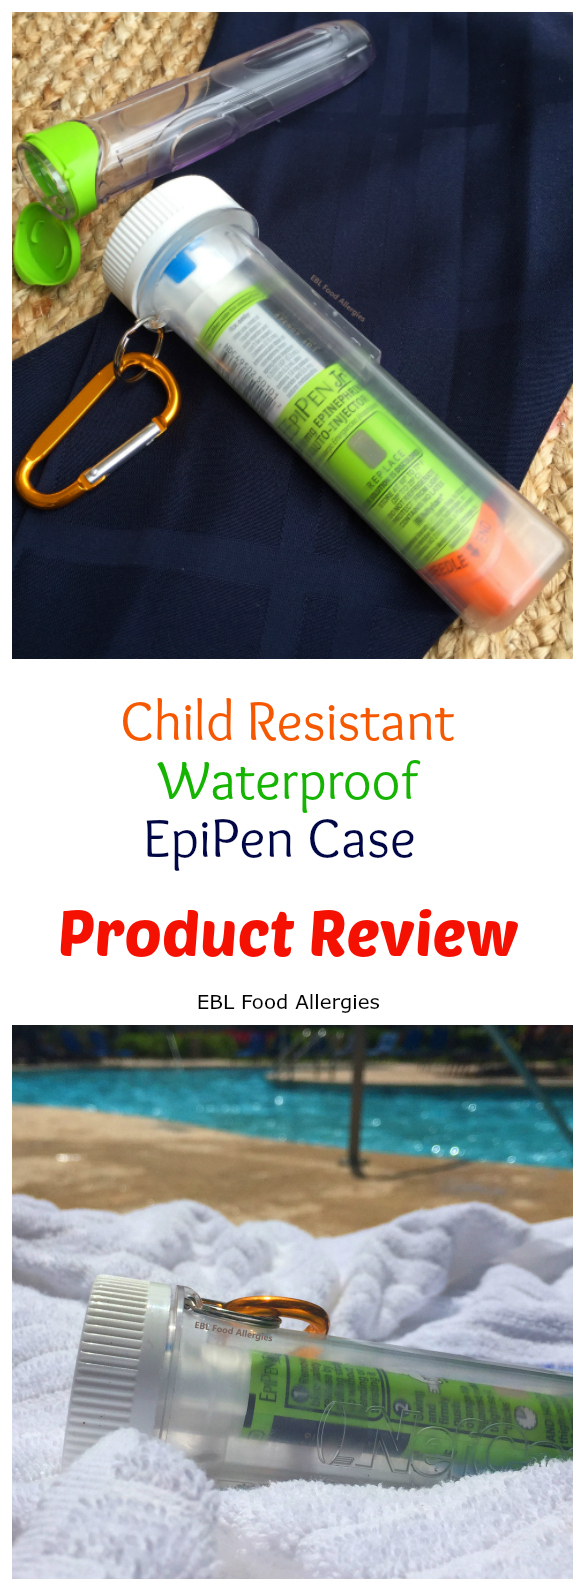 Product review on a new EpiPen Case that is child resistant and waterproof!